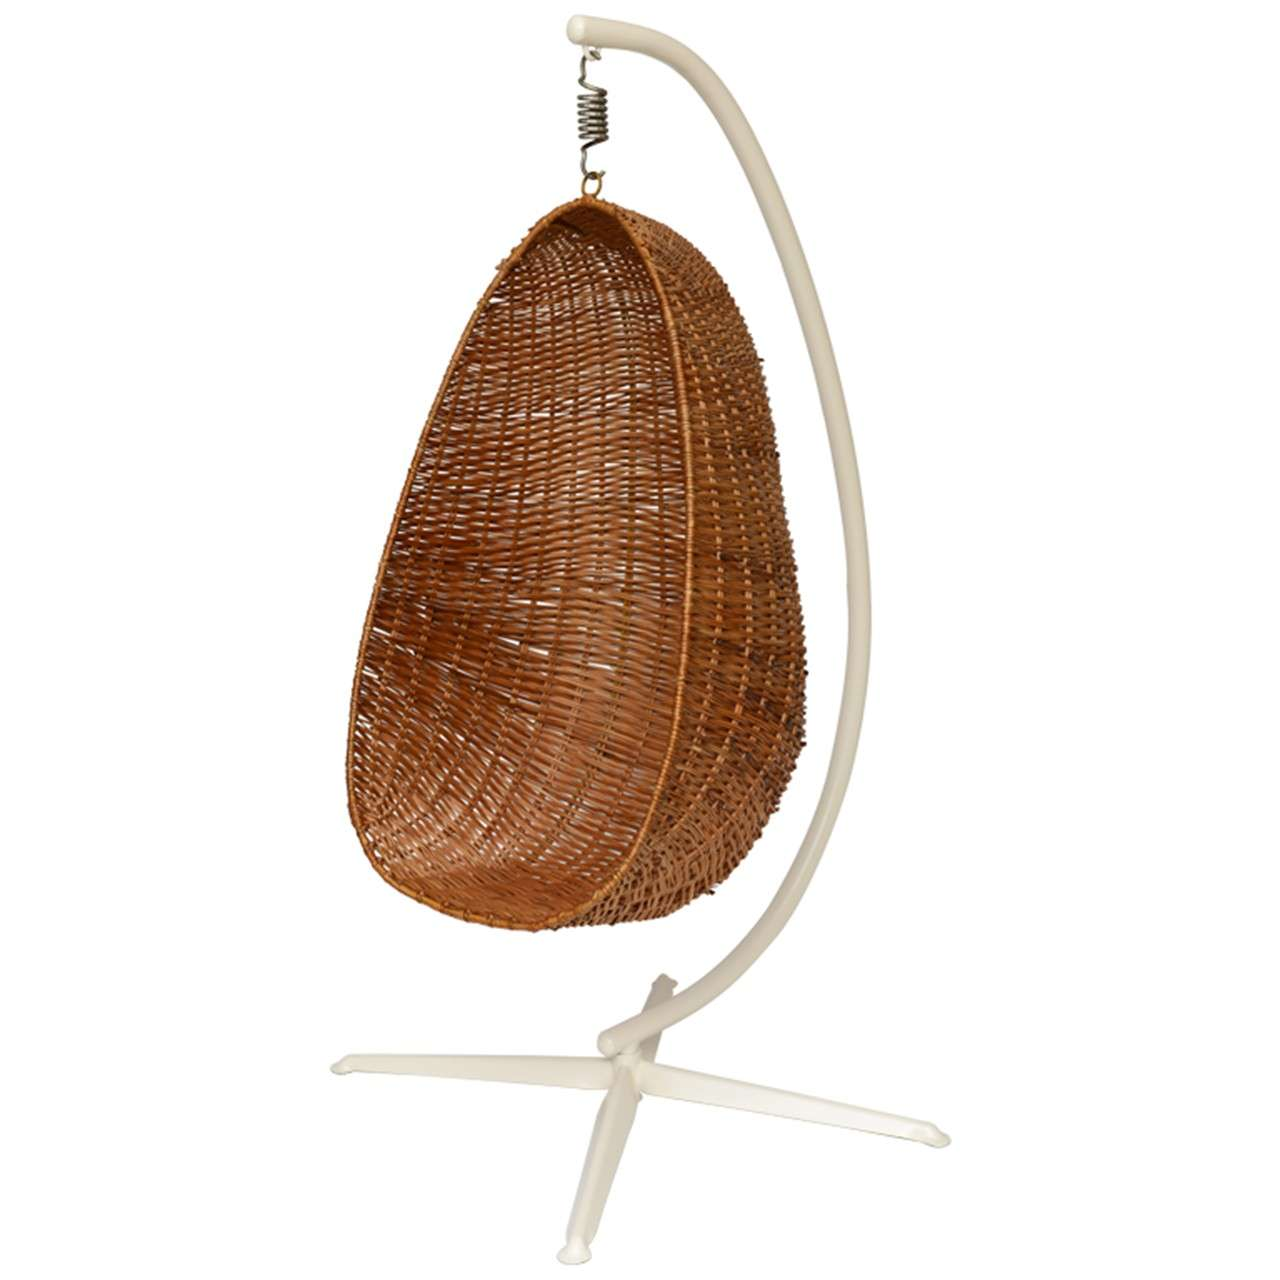 Rattan Egg Swing Chair X Jpg